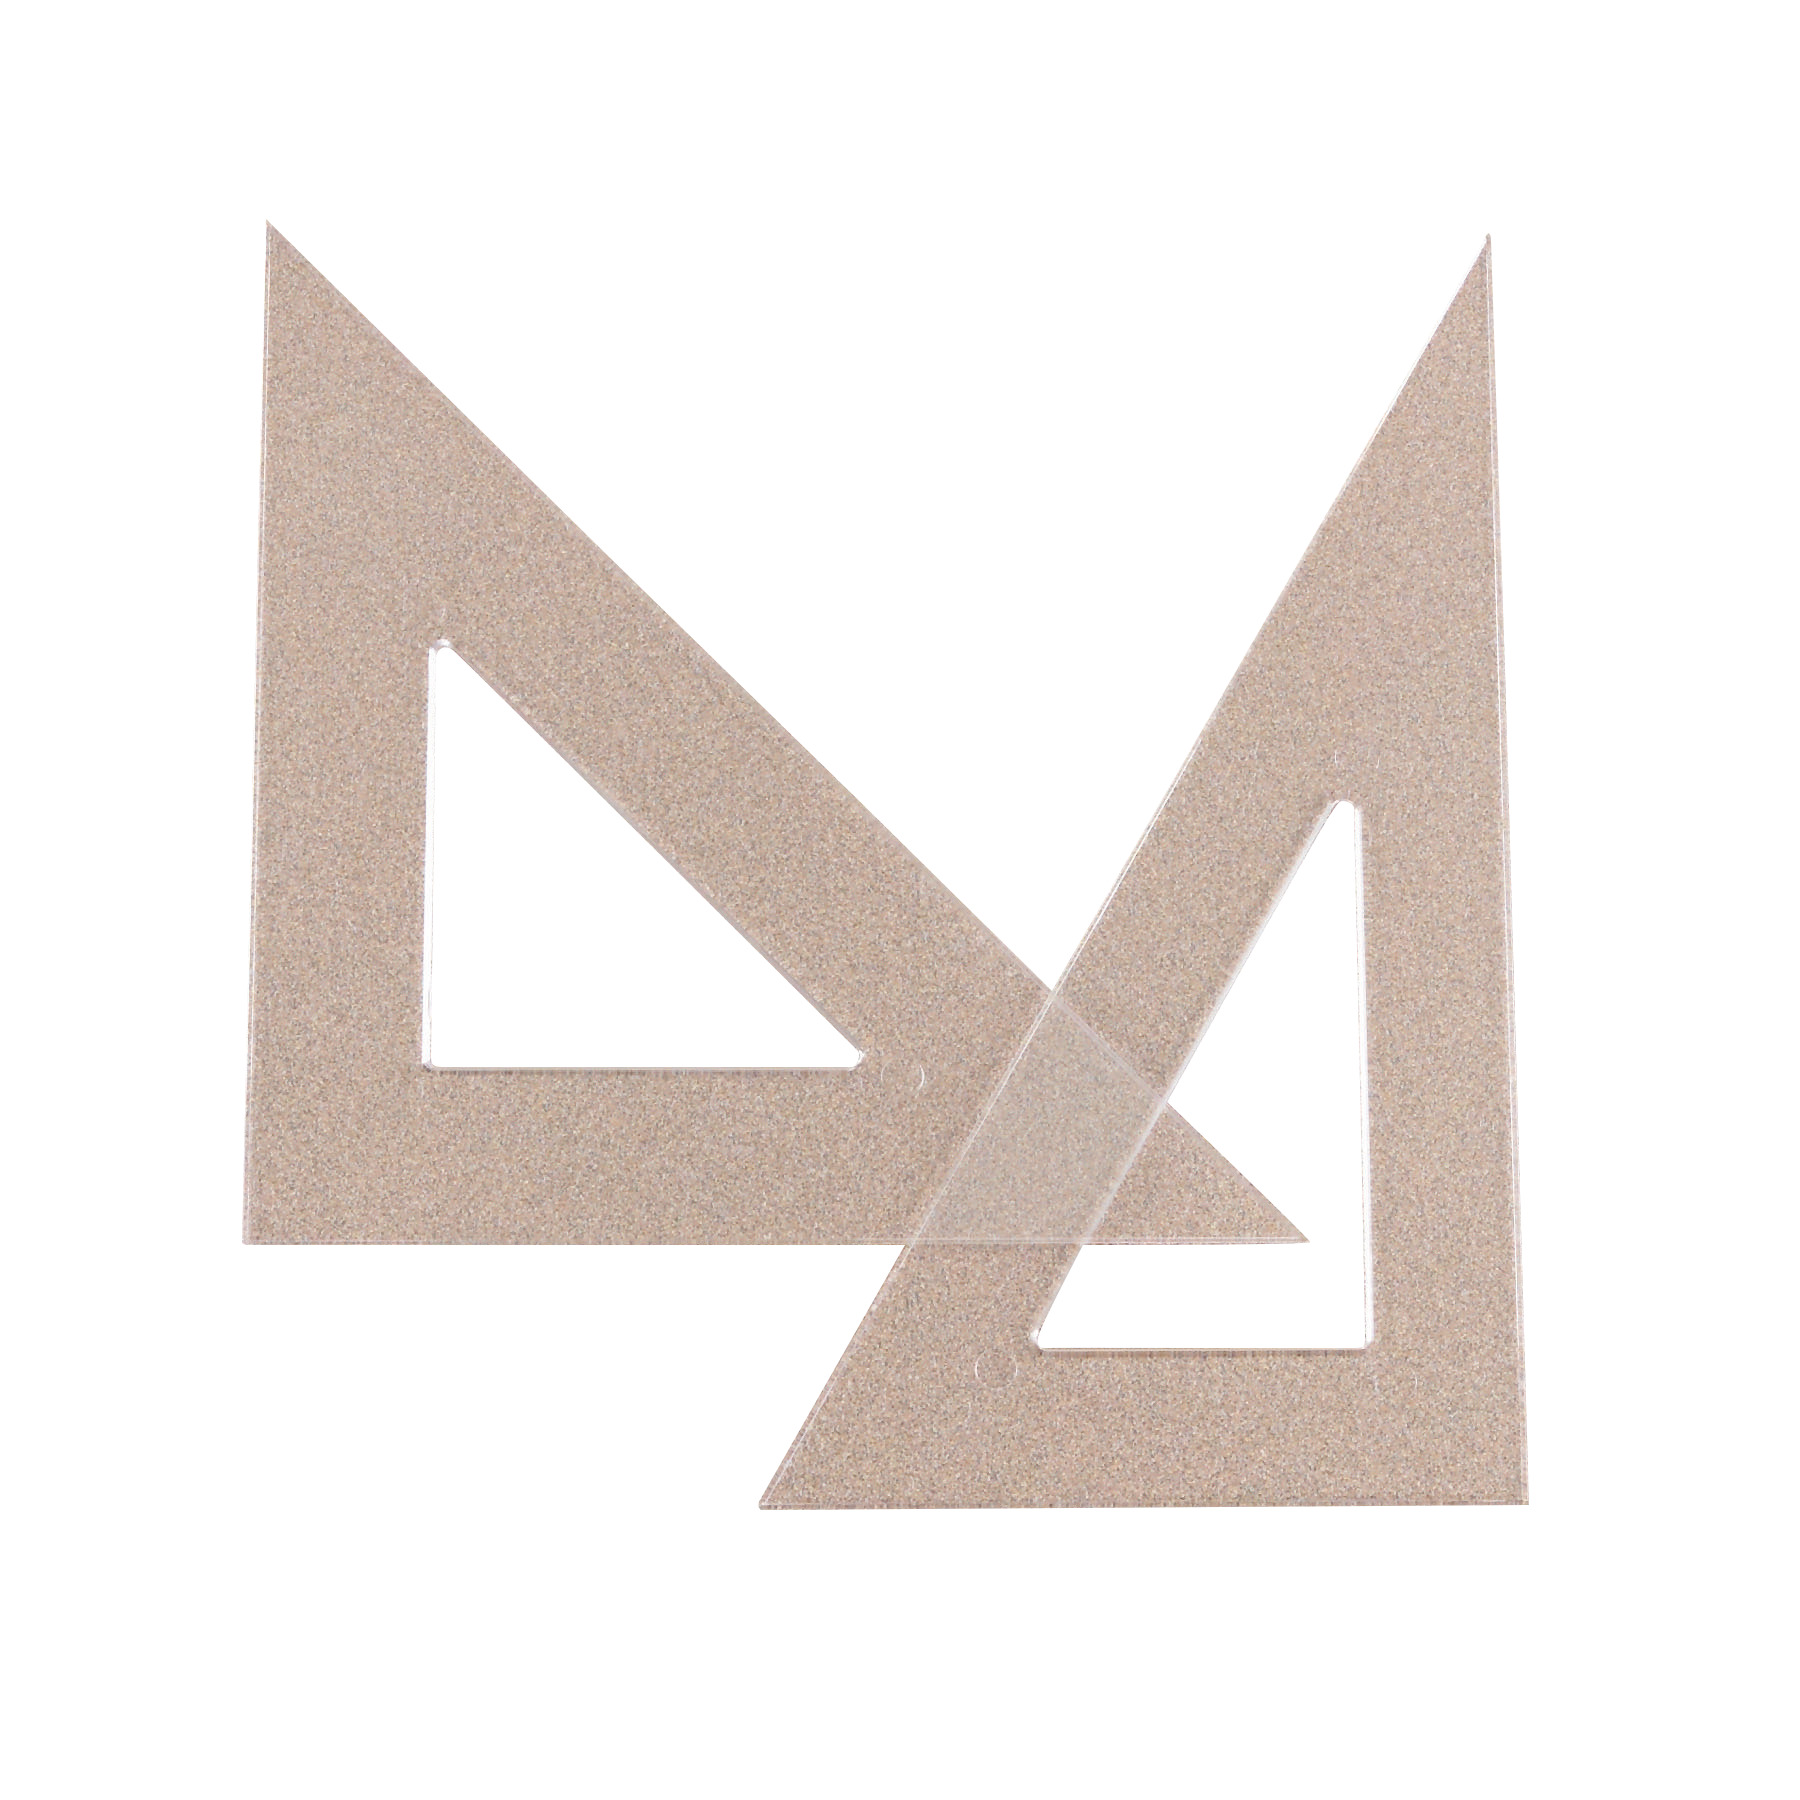 De S About Westcott Student Grade Polystyrene Triangle  Degrees 6 Inches Clear